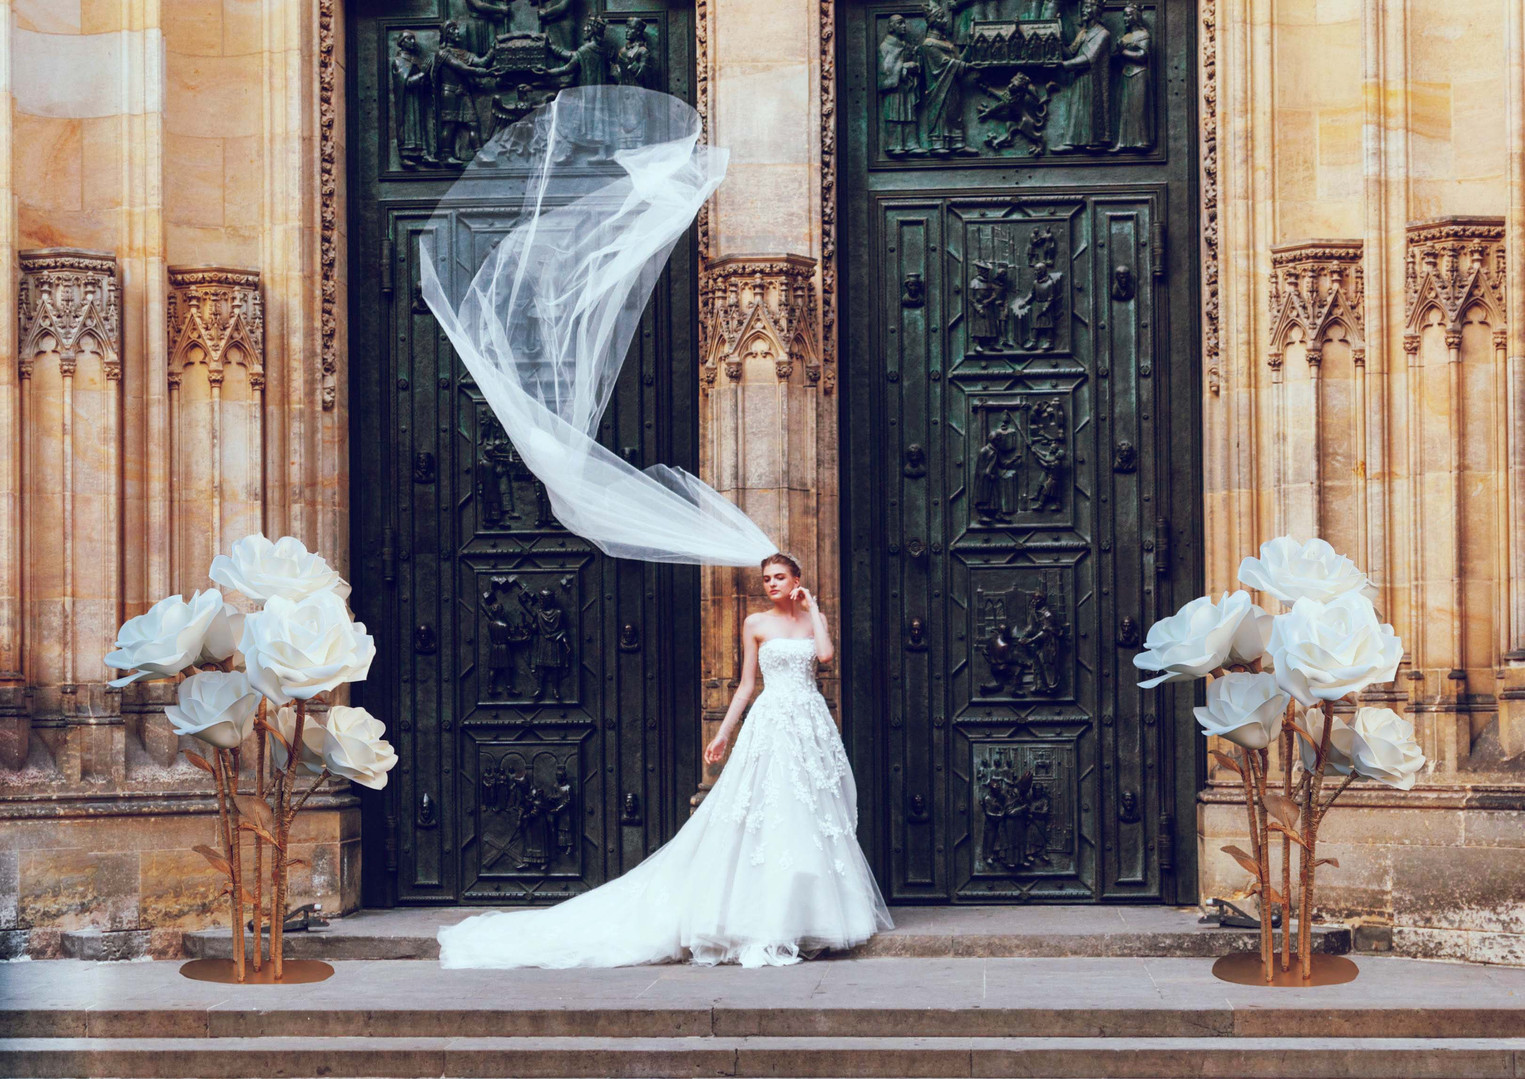 Bridal Shoot with Giant Rose Flowers